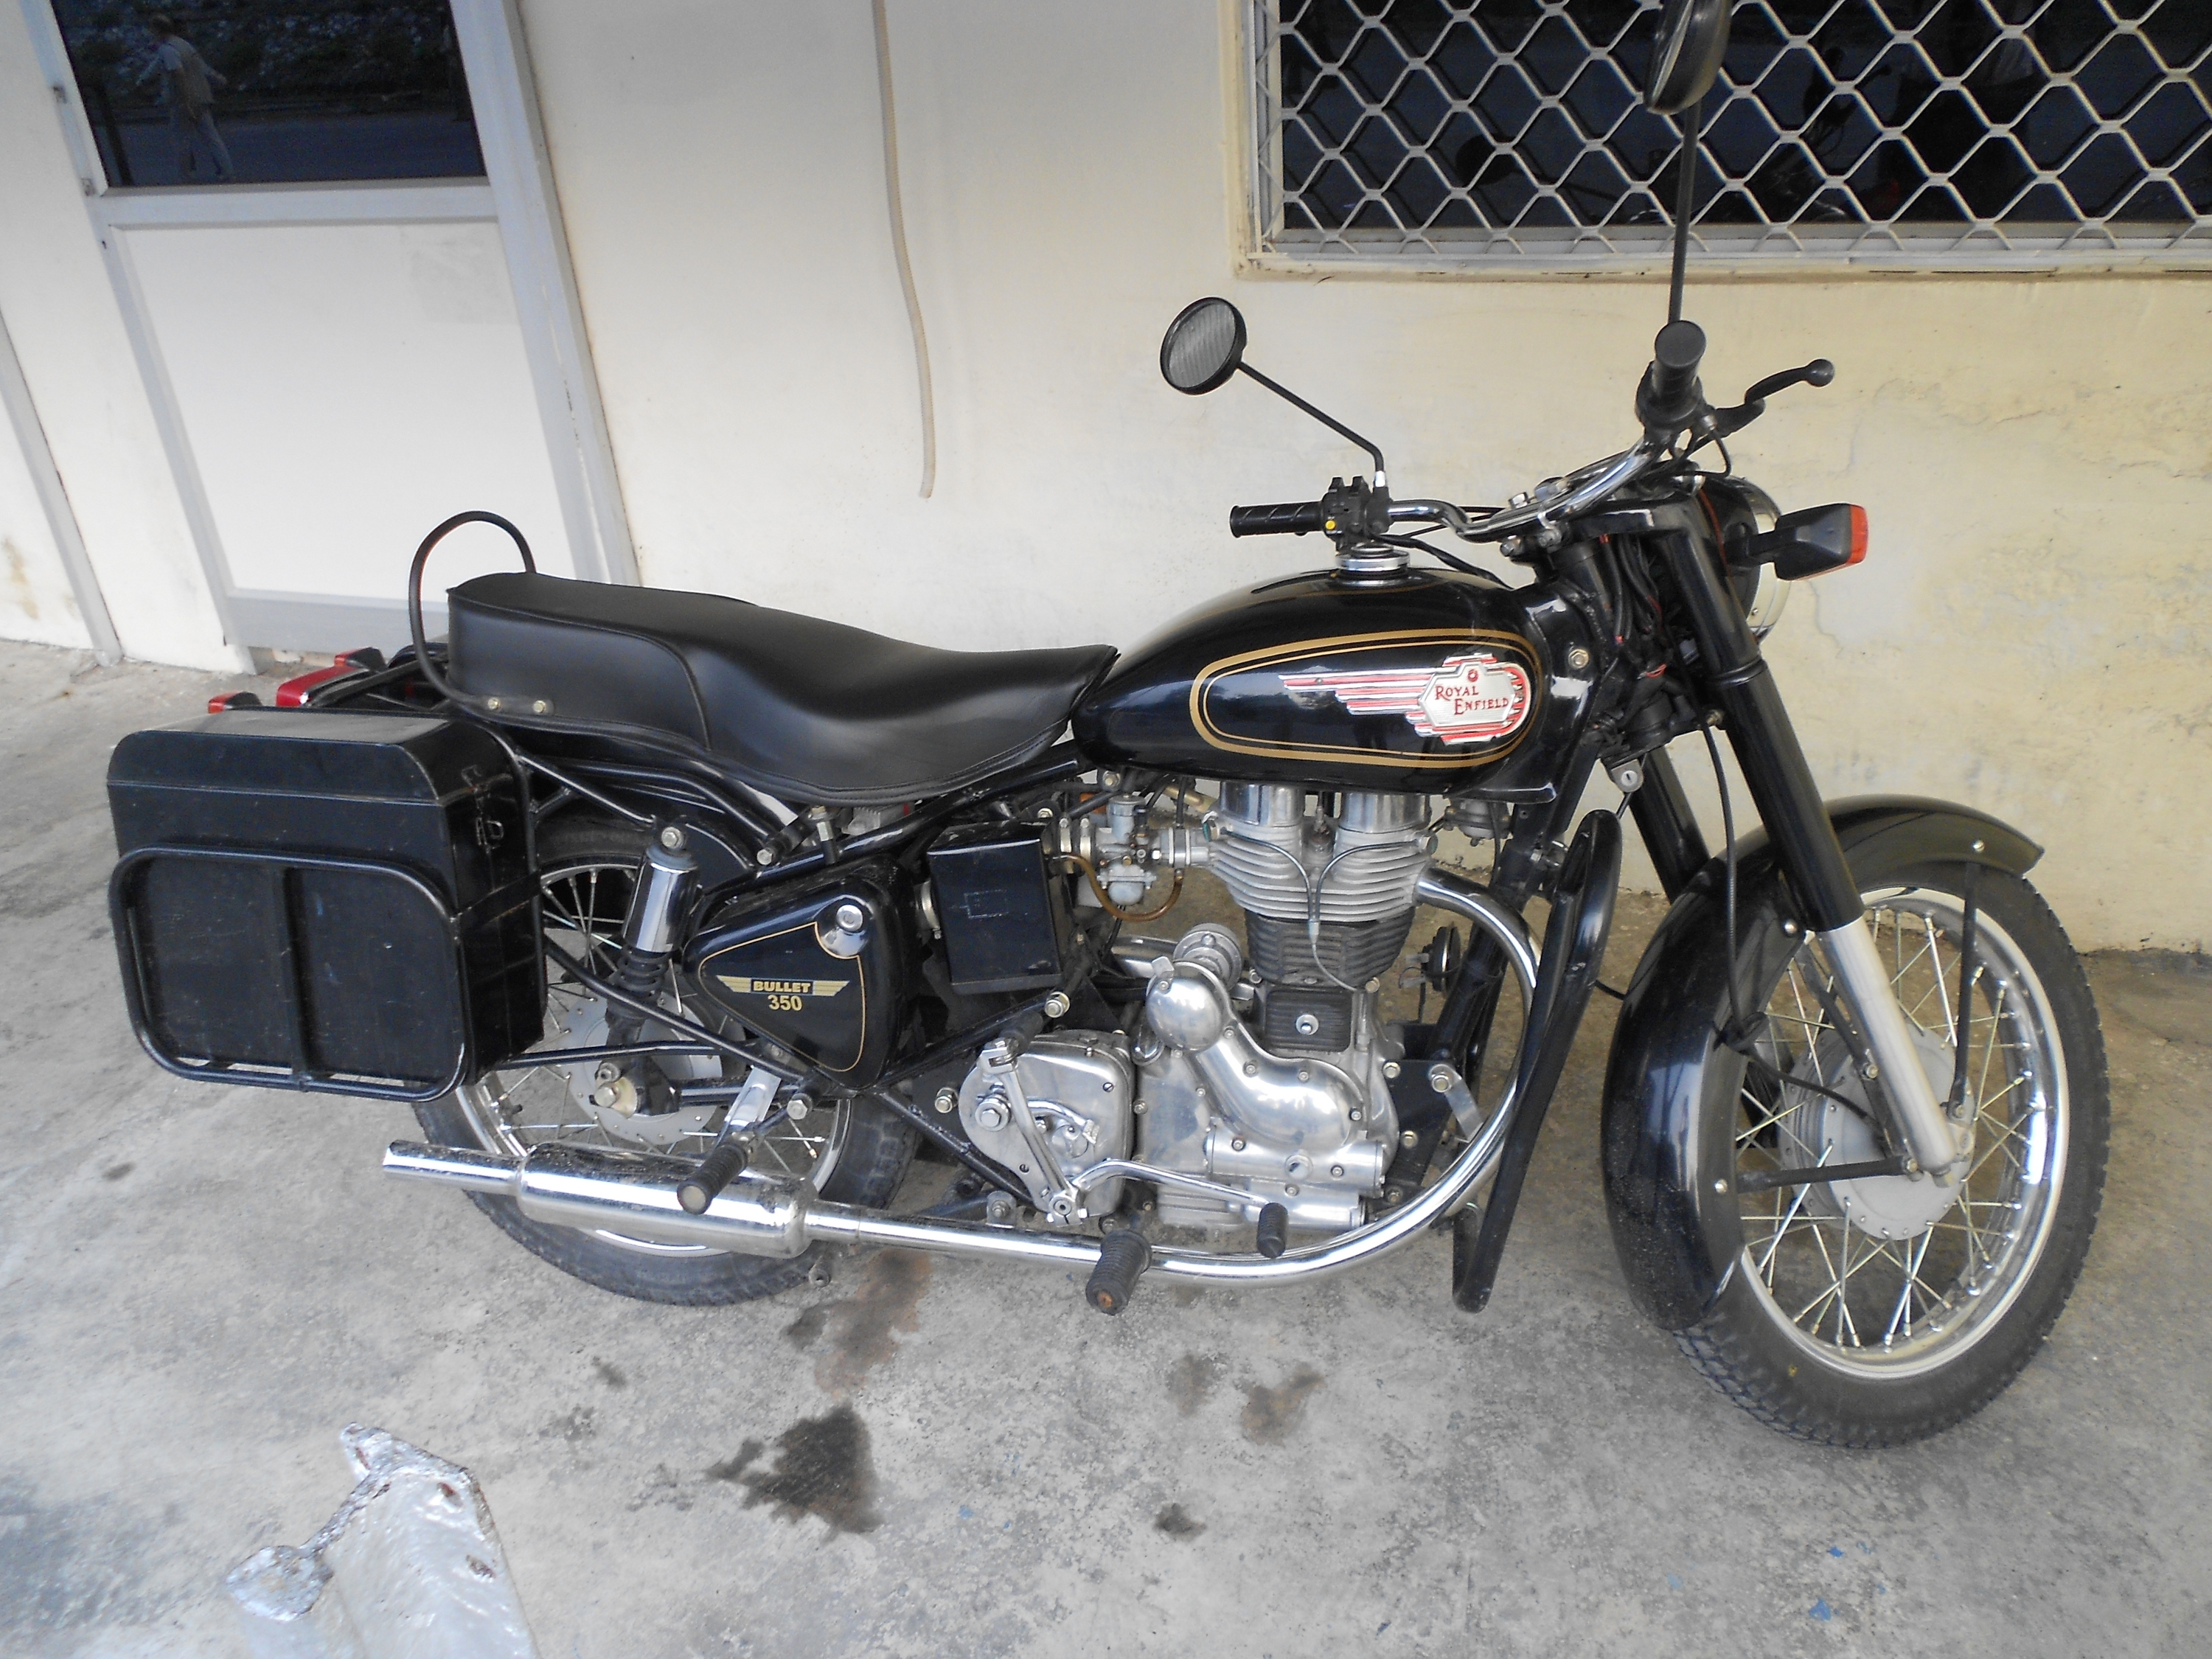 Royal Enfield Bullet 350 Classic 2007 images #123976